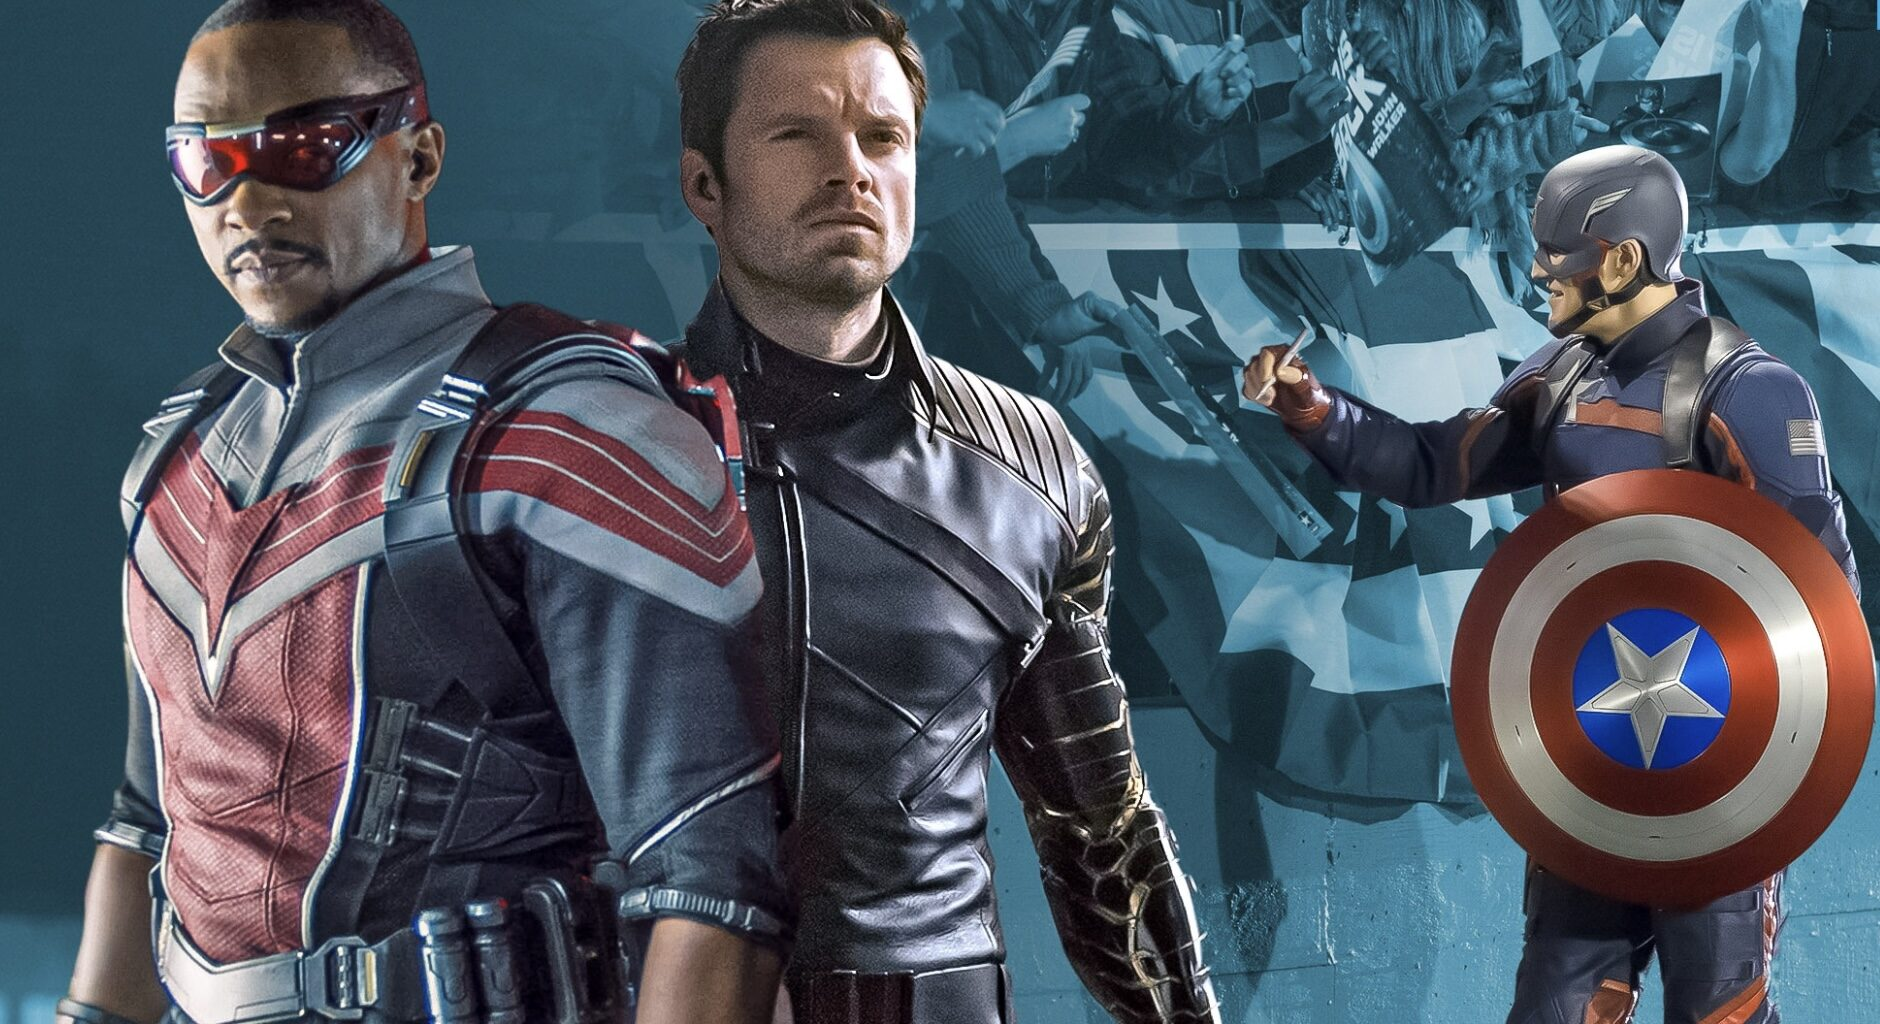 The Falcon and The Winter Soldier Episode 5 Release Date